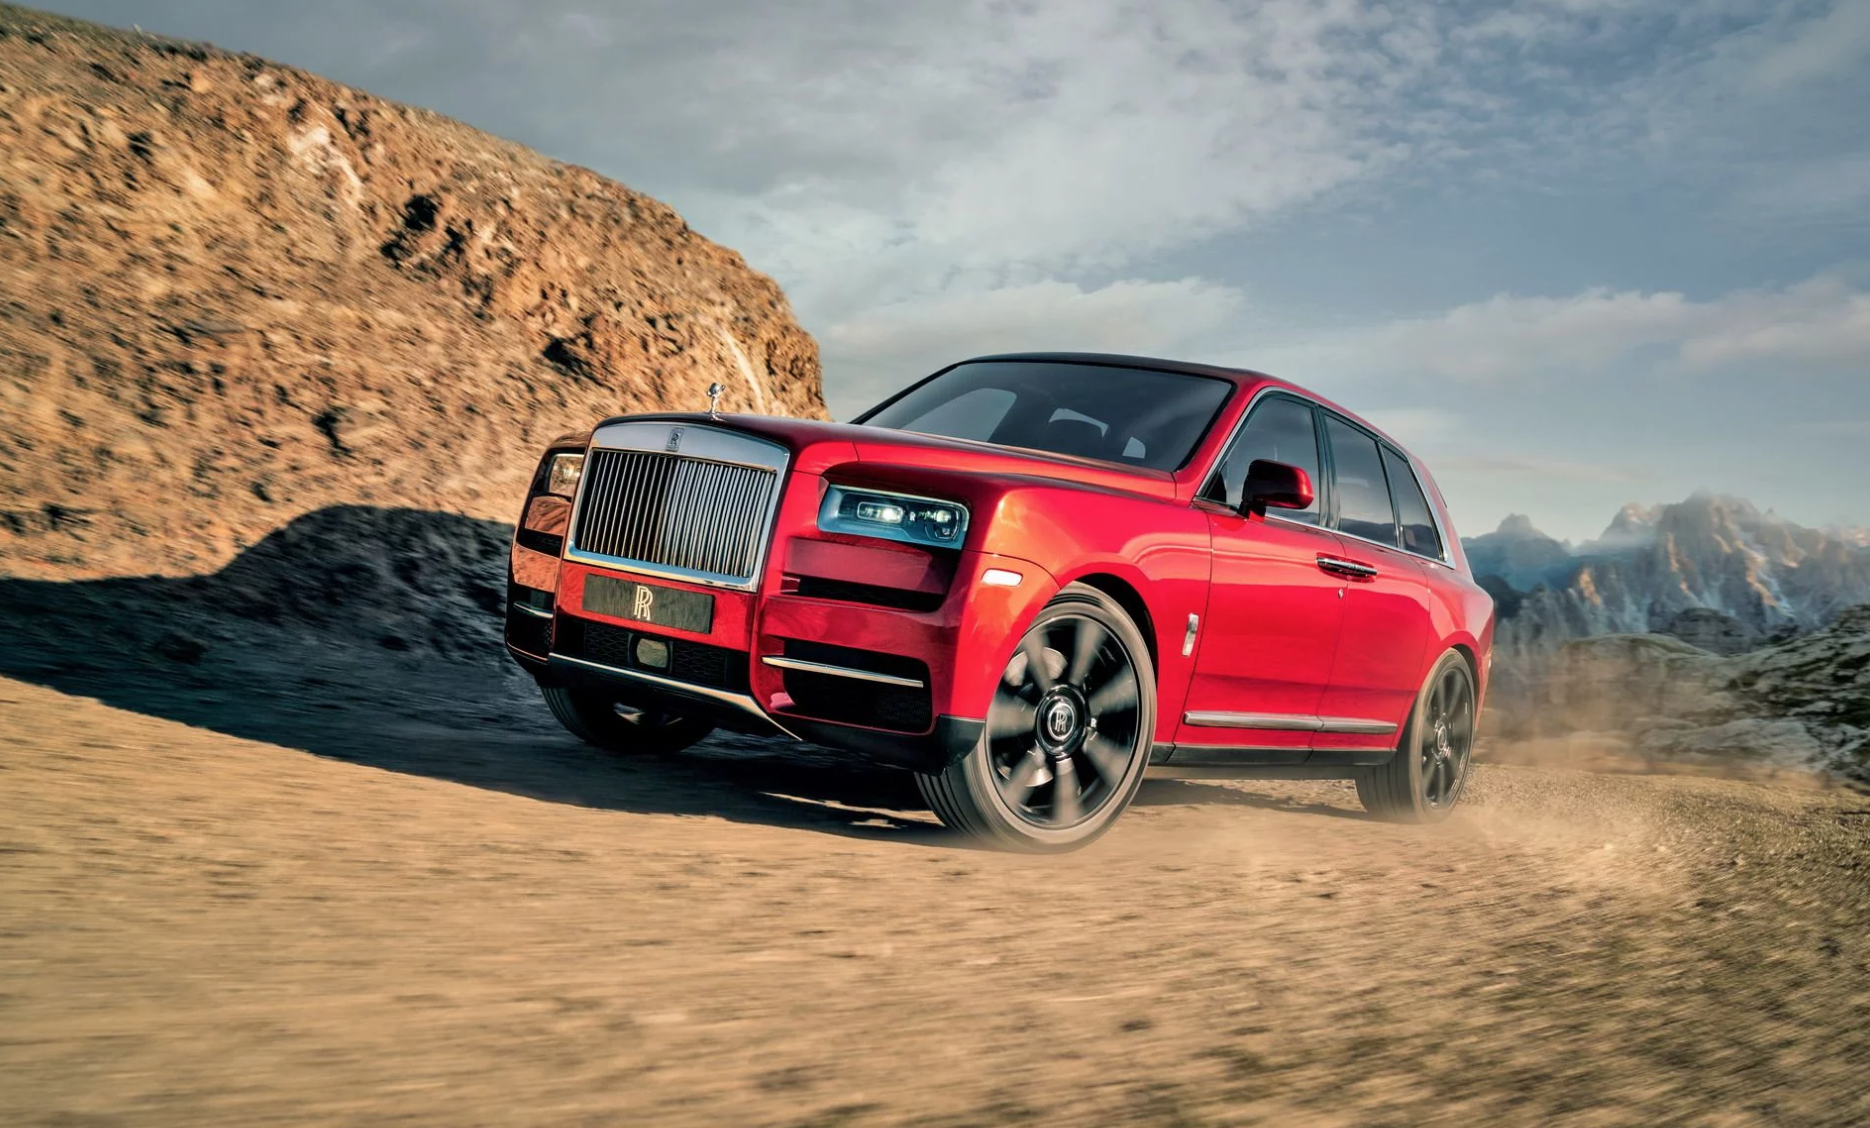 rolls-royce-cullinan-autodaily-010.png